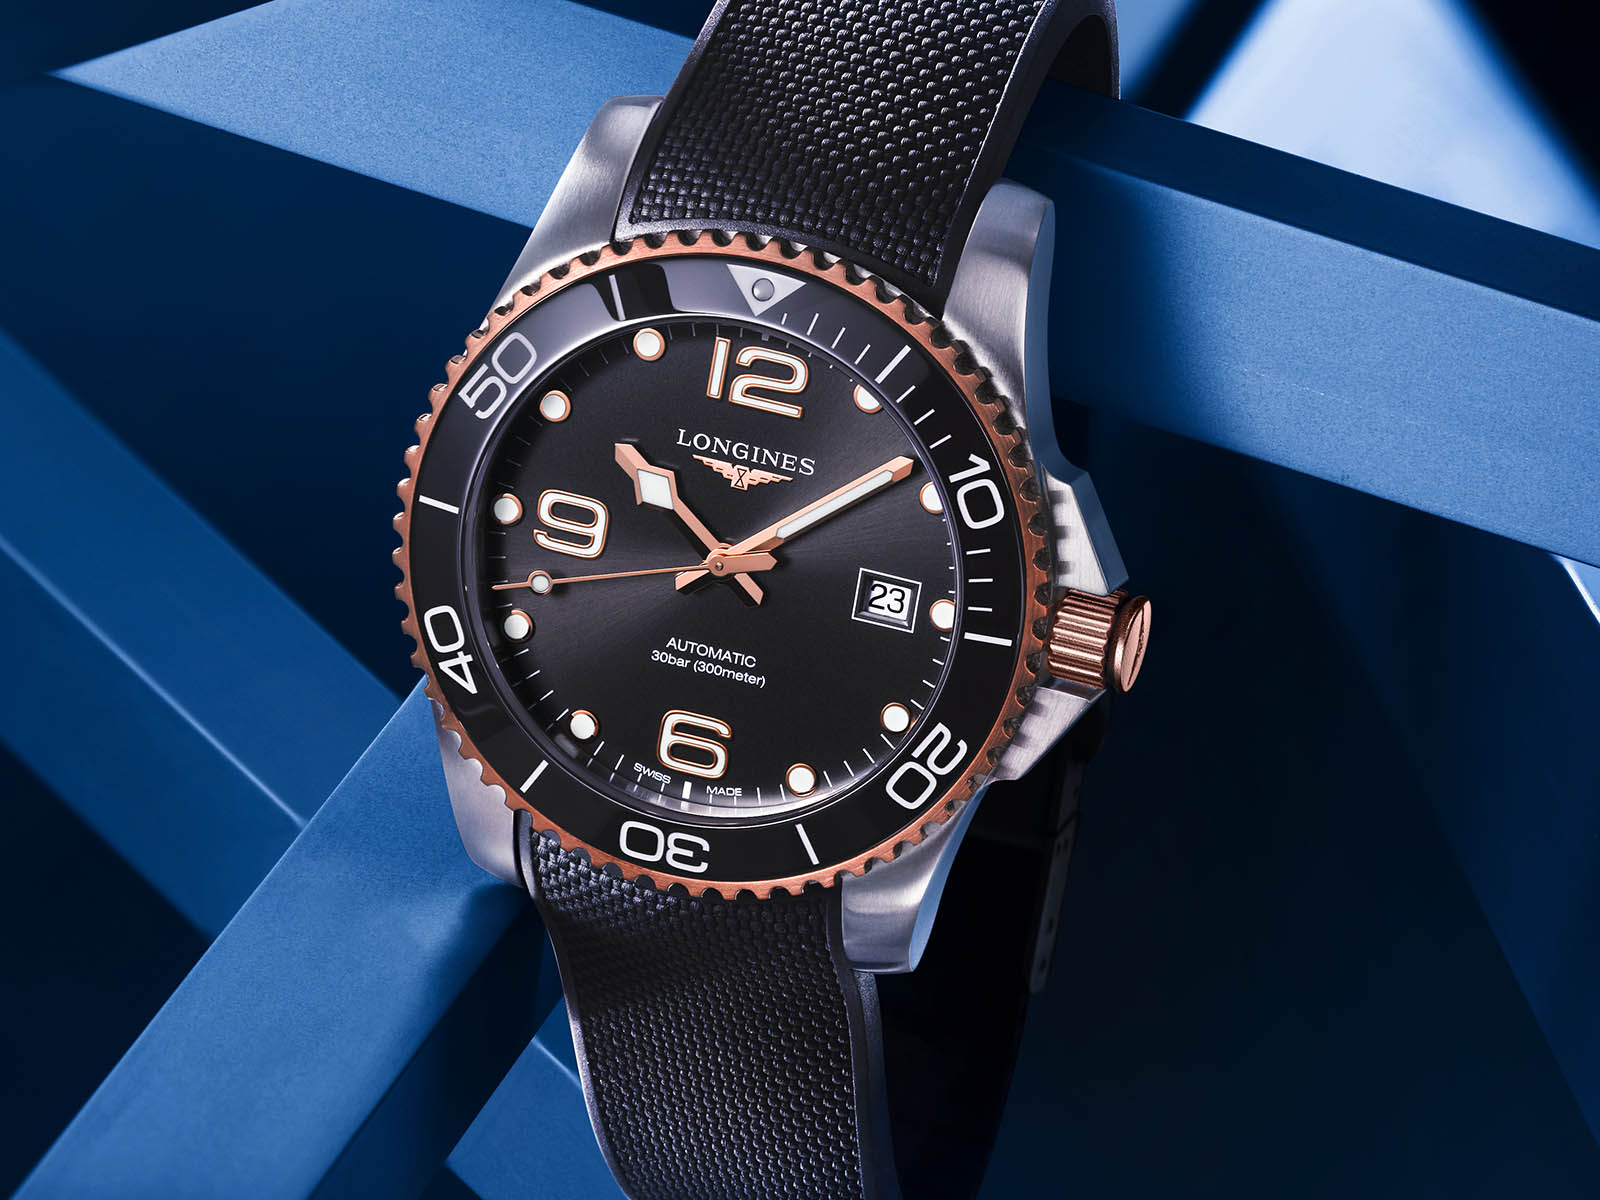 l3-781-3-58-9-longines-hydroconquest-41mm-two-tone-collection-1.jpg